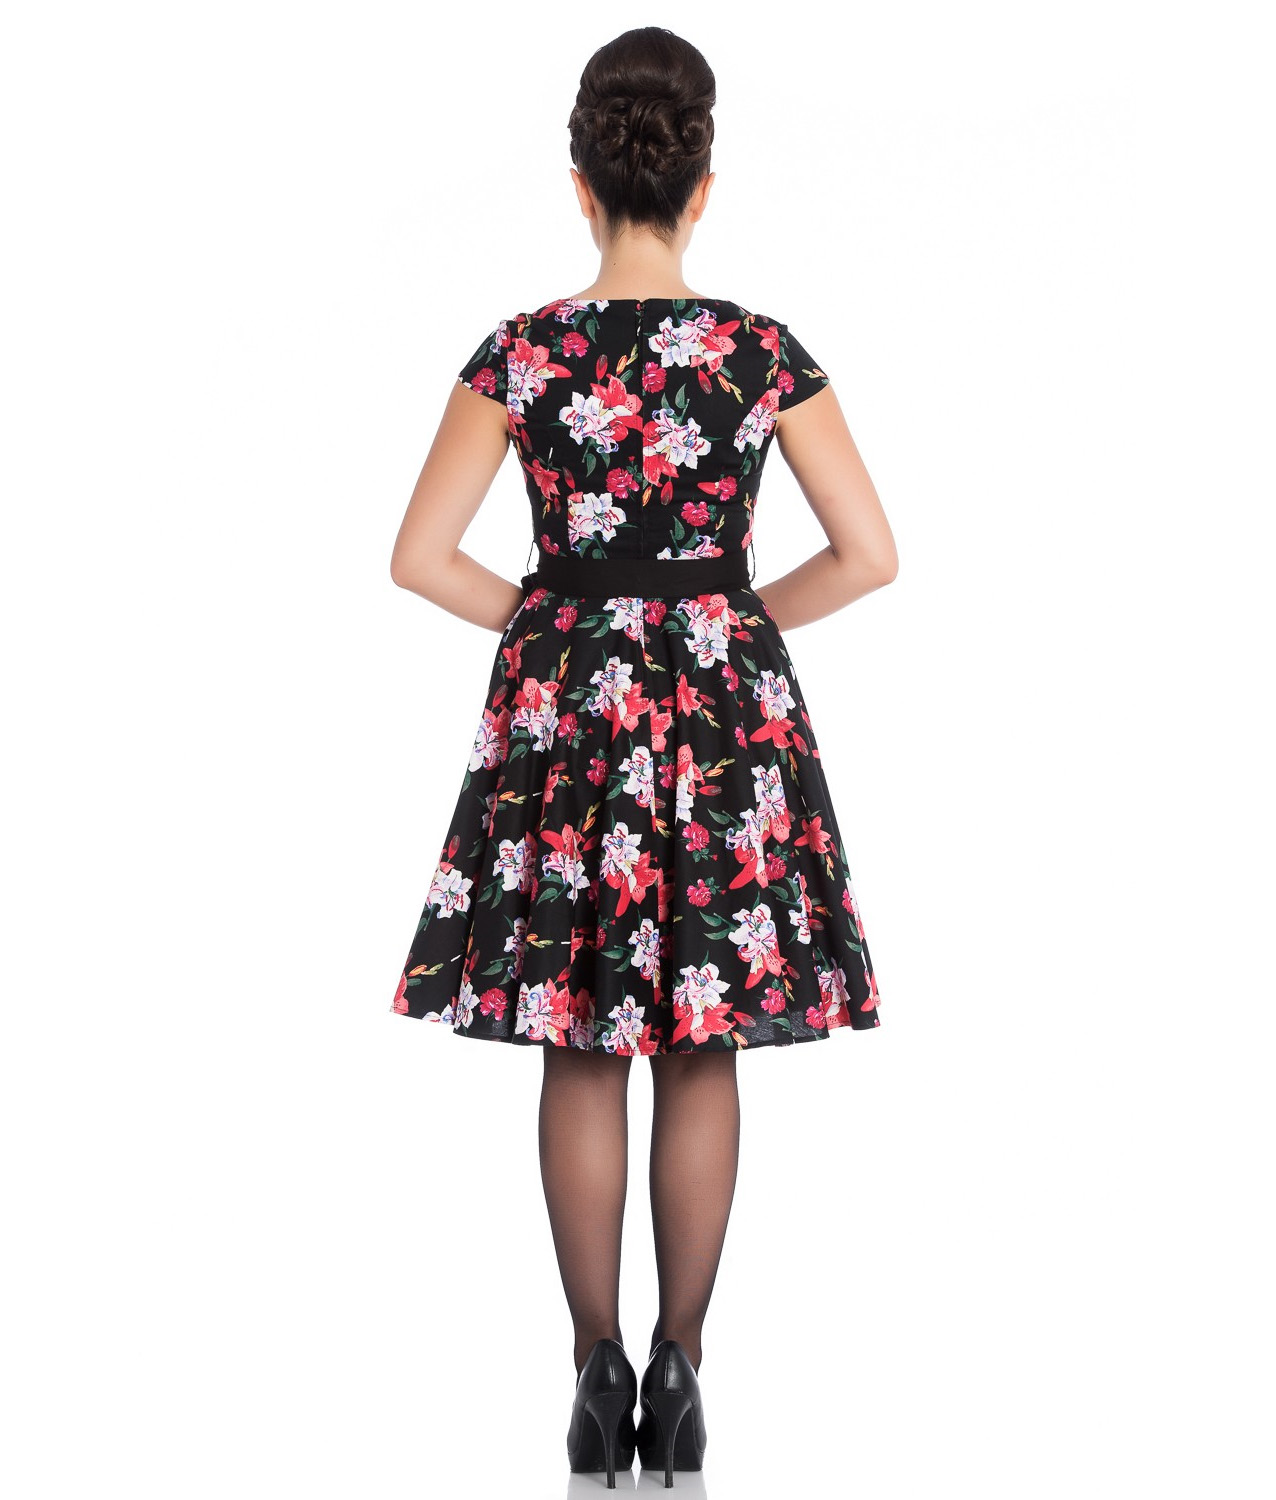 Hell-Bunny-Pin-Up-Mid-Length-50s-Dress-LILIANA-Lilly-Black-Flowers-Bow-All-Sizes thumbnail 9